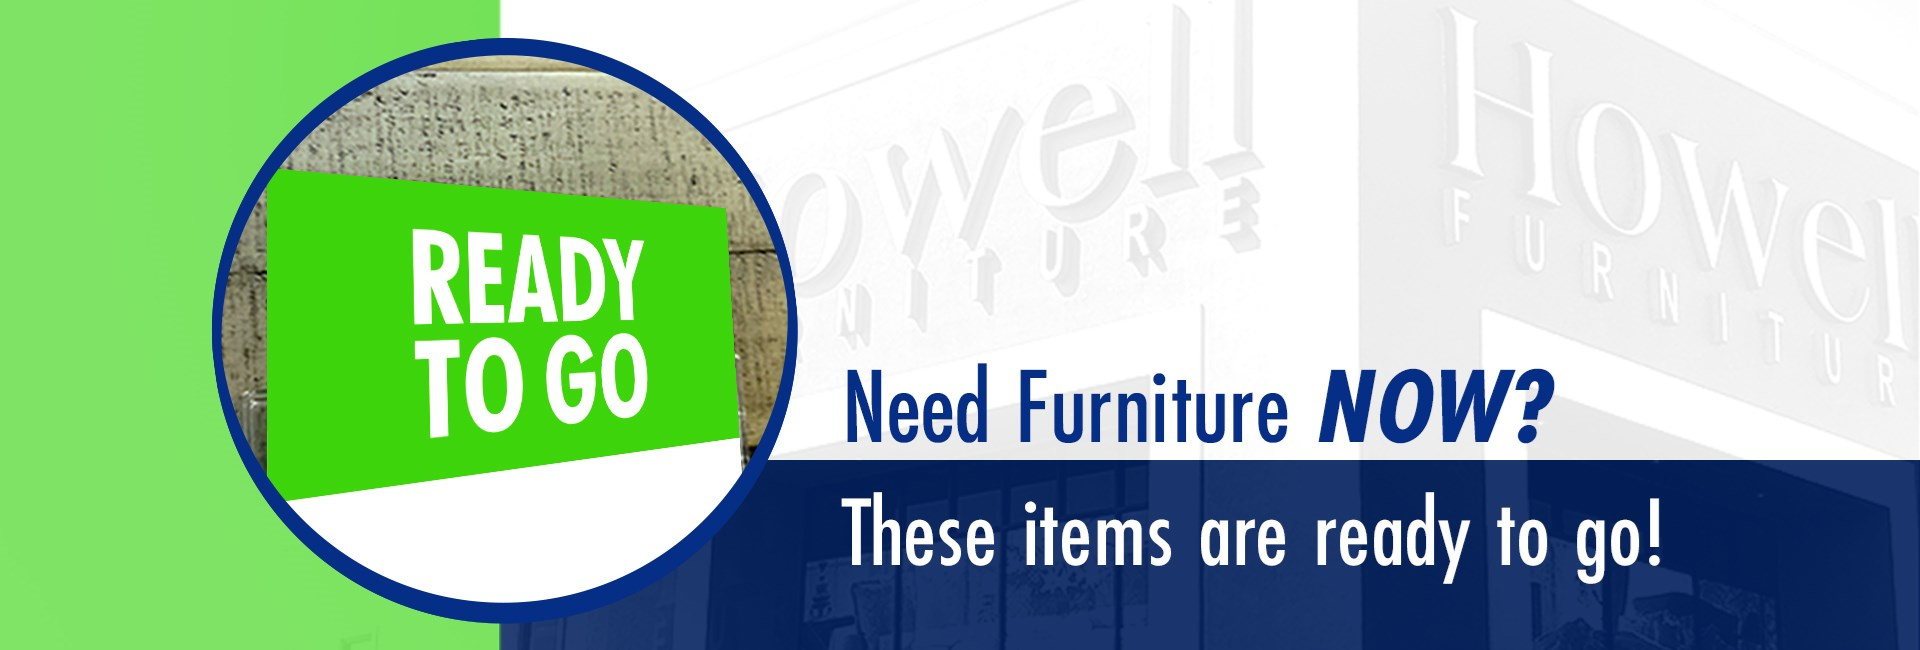 ready to go furniture